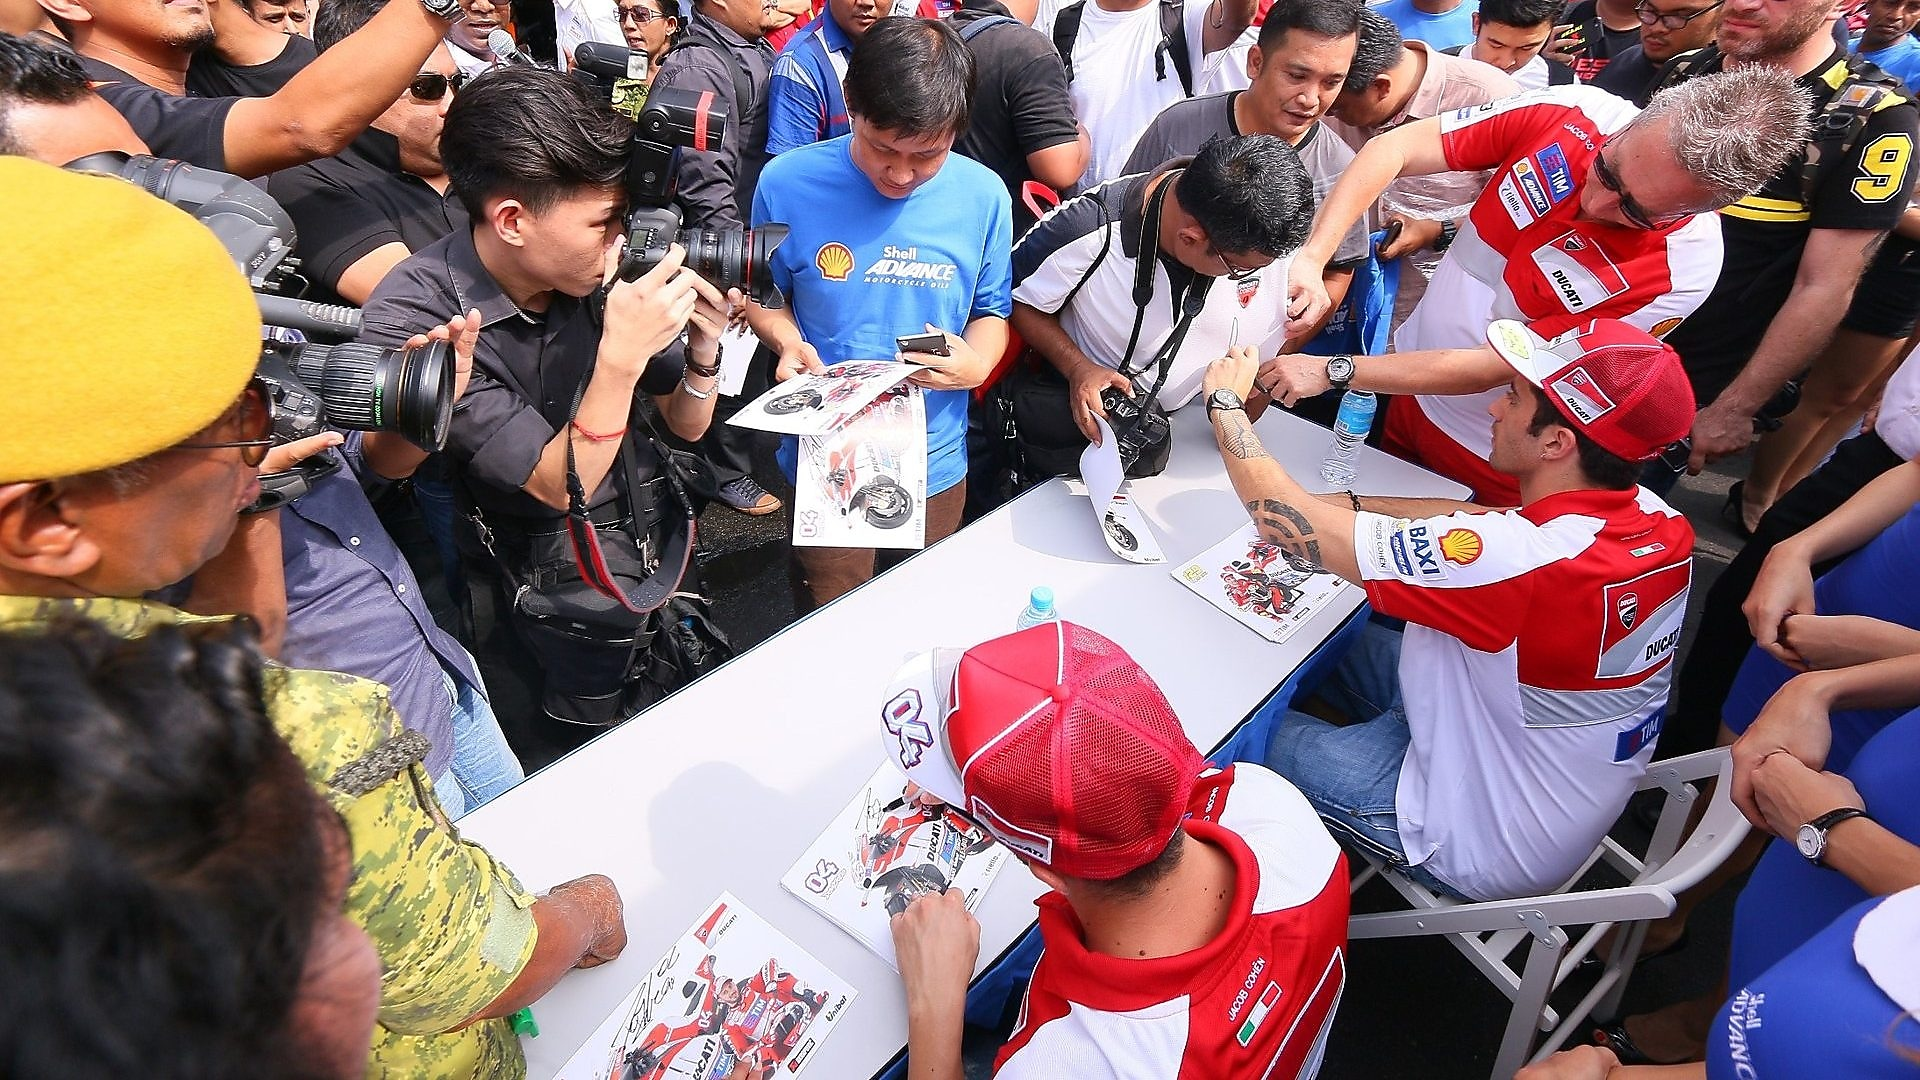 The autograph signing session was a hit with the Jalan Sentul crowd